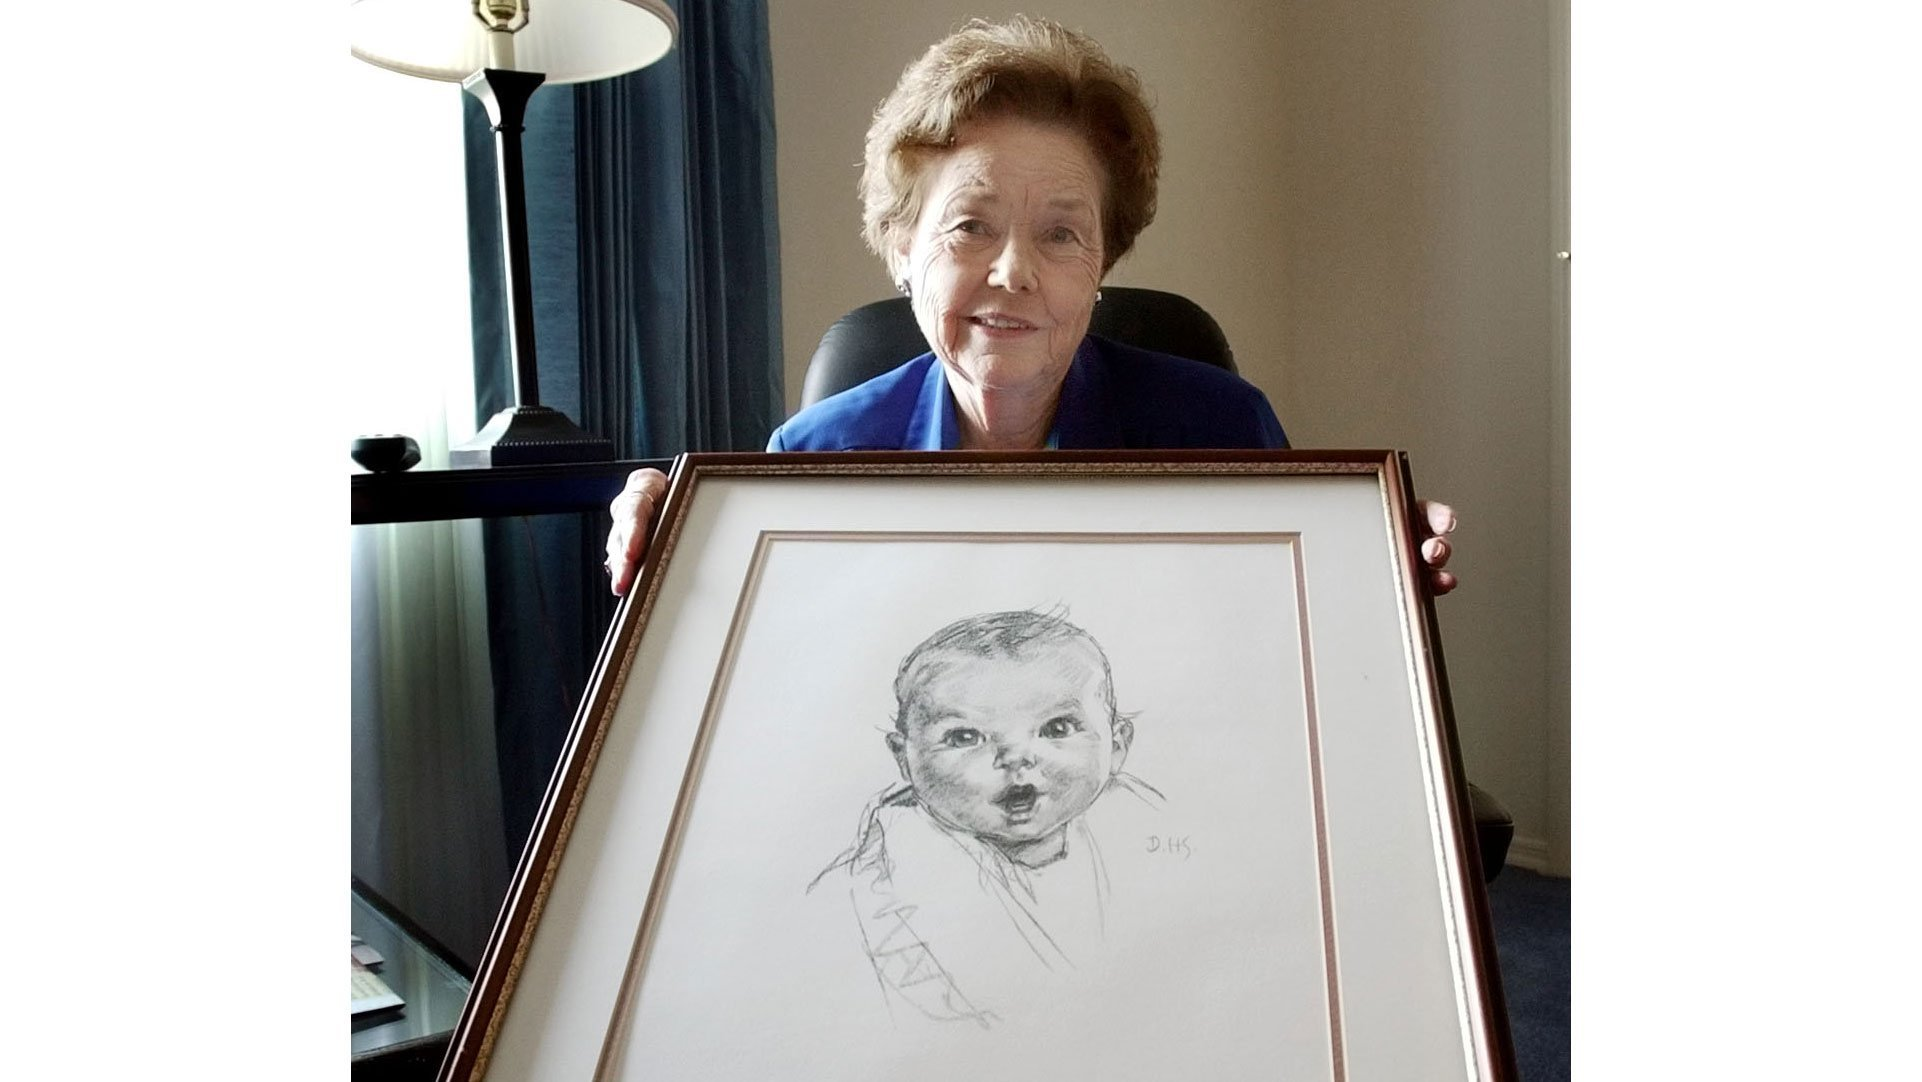 The original Gerber baby is not so little anymore. She's now a 93-year-old mystery novelist